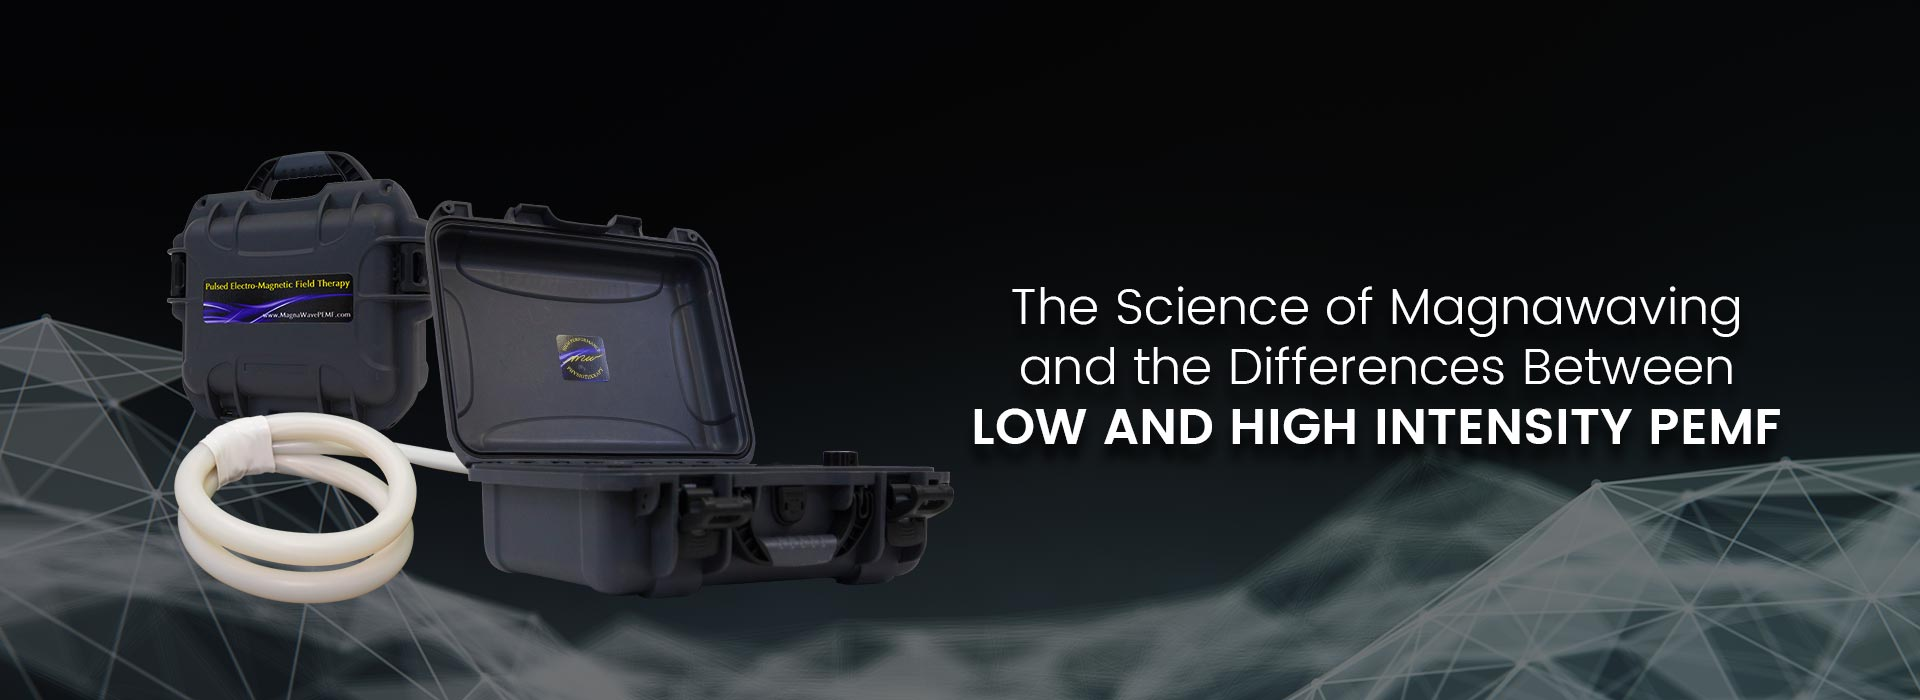 The Science of Magnawaving and the Differences Between Low and High Intensity PEMF